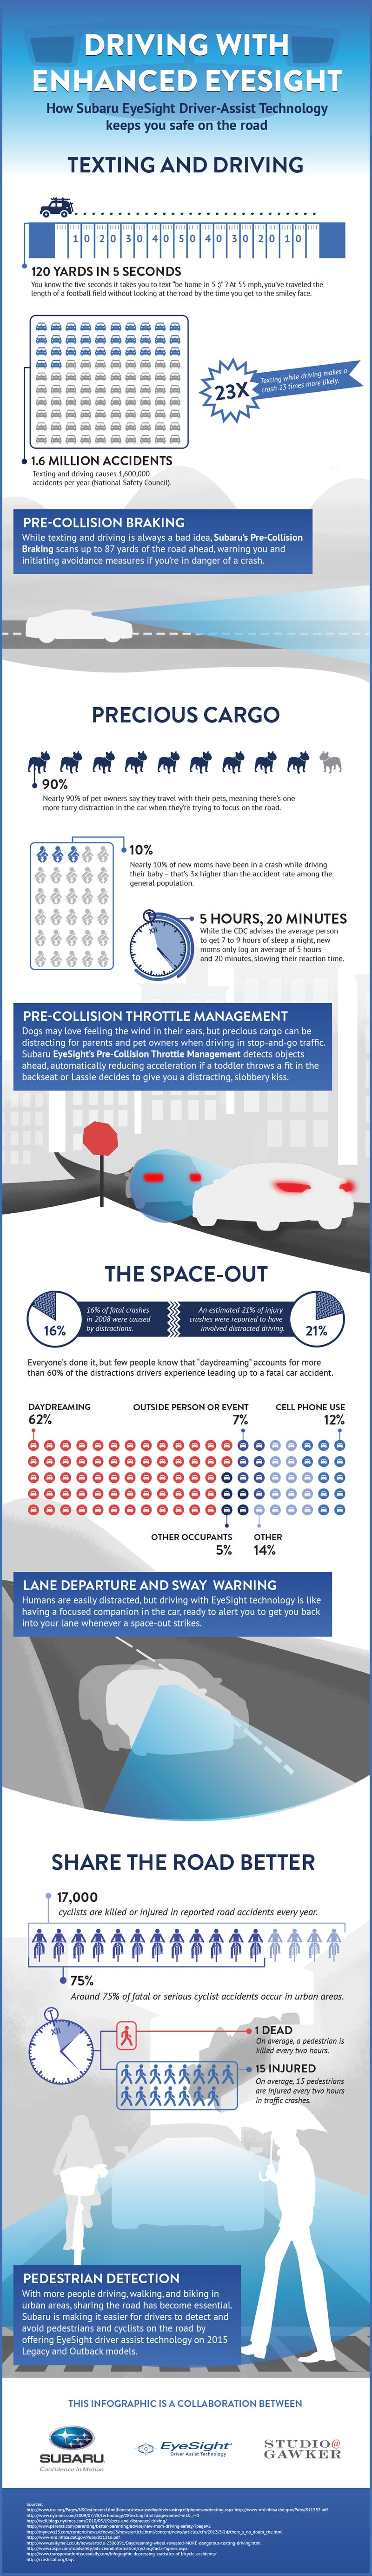 This Infographic Shows Why Driving is Safer With a Second Set of Eyes